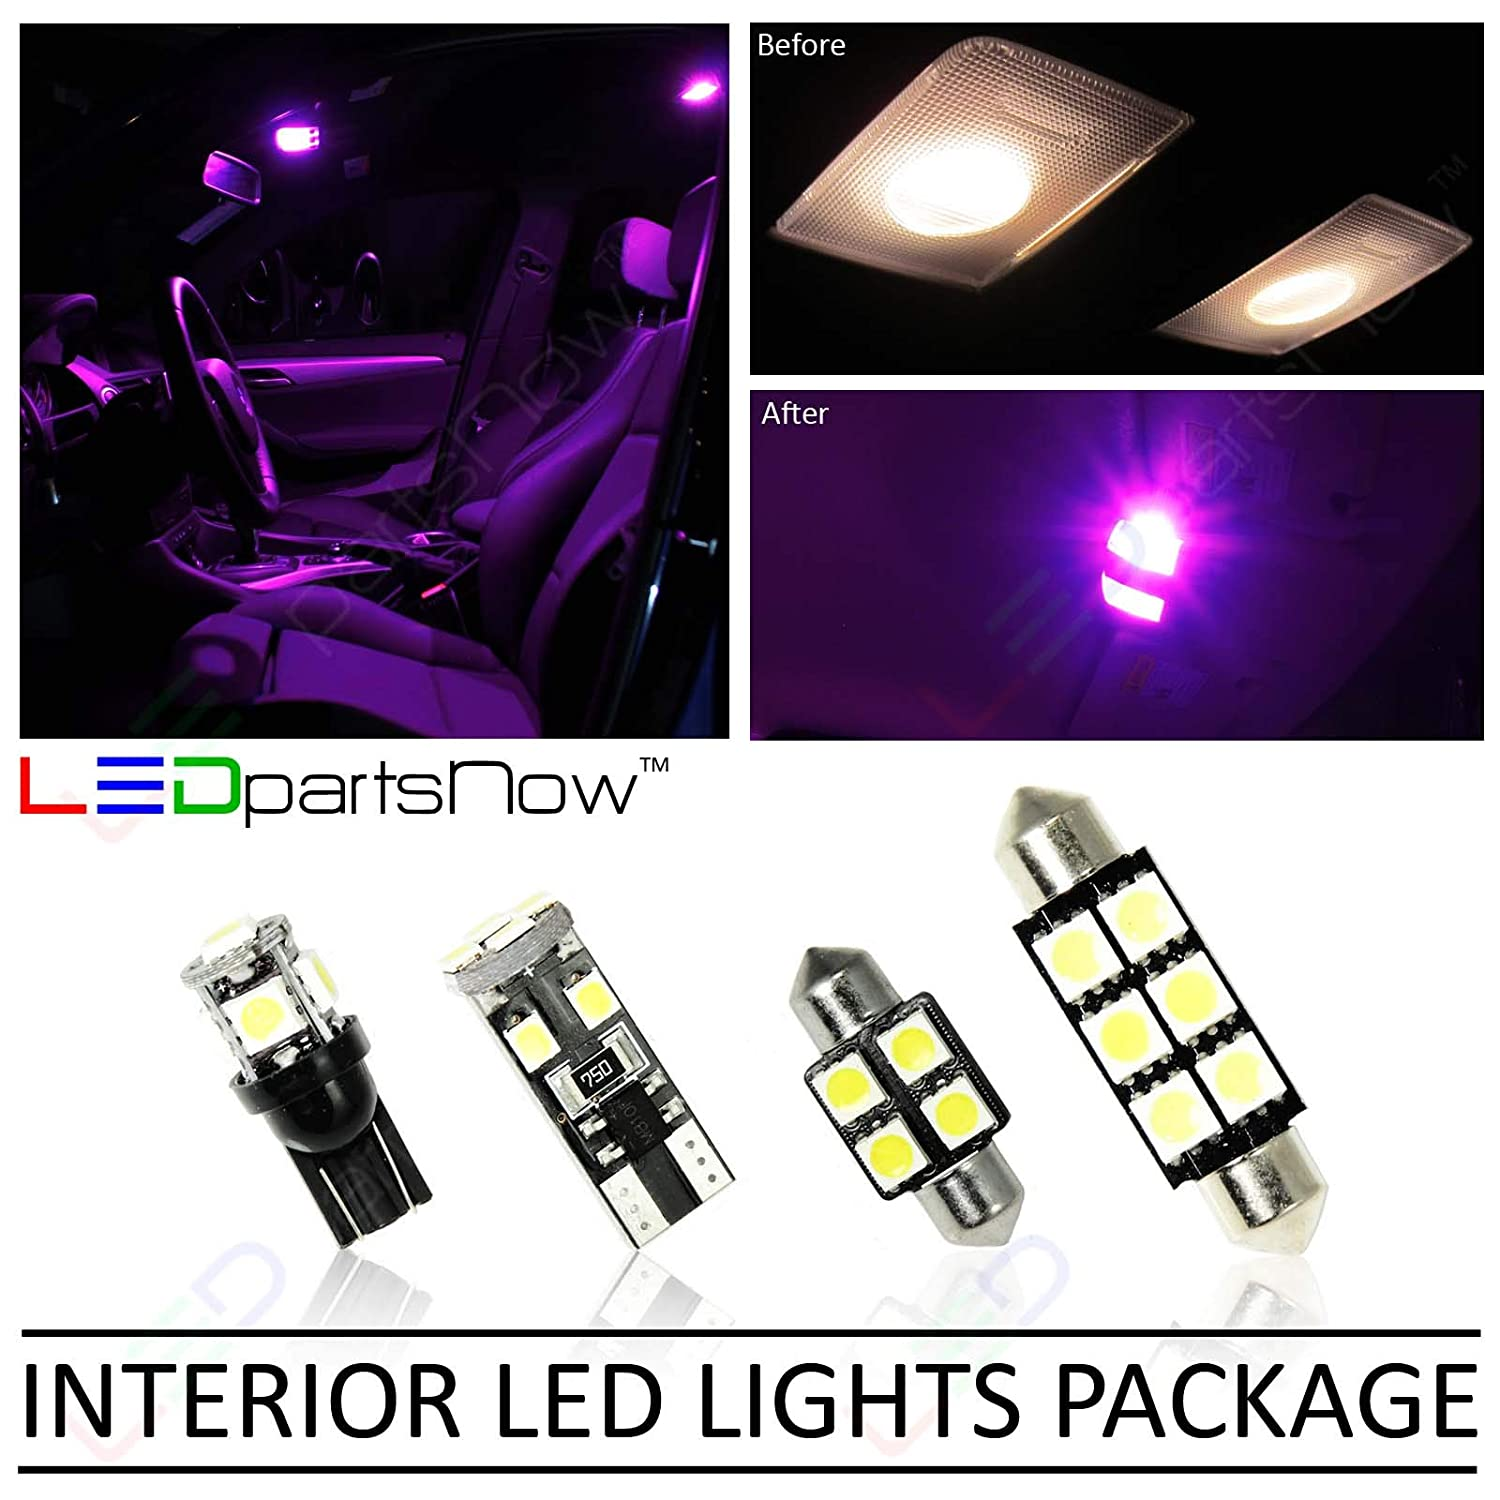 LEDpartsNow Interior LED Lights Replacement for 2015-2018 Dodge Charger Accessories Package Kit (17 Bulbs), FUCHSIA PURPLE